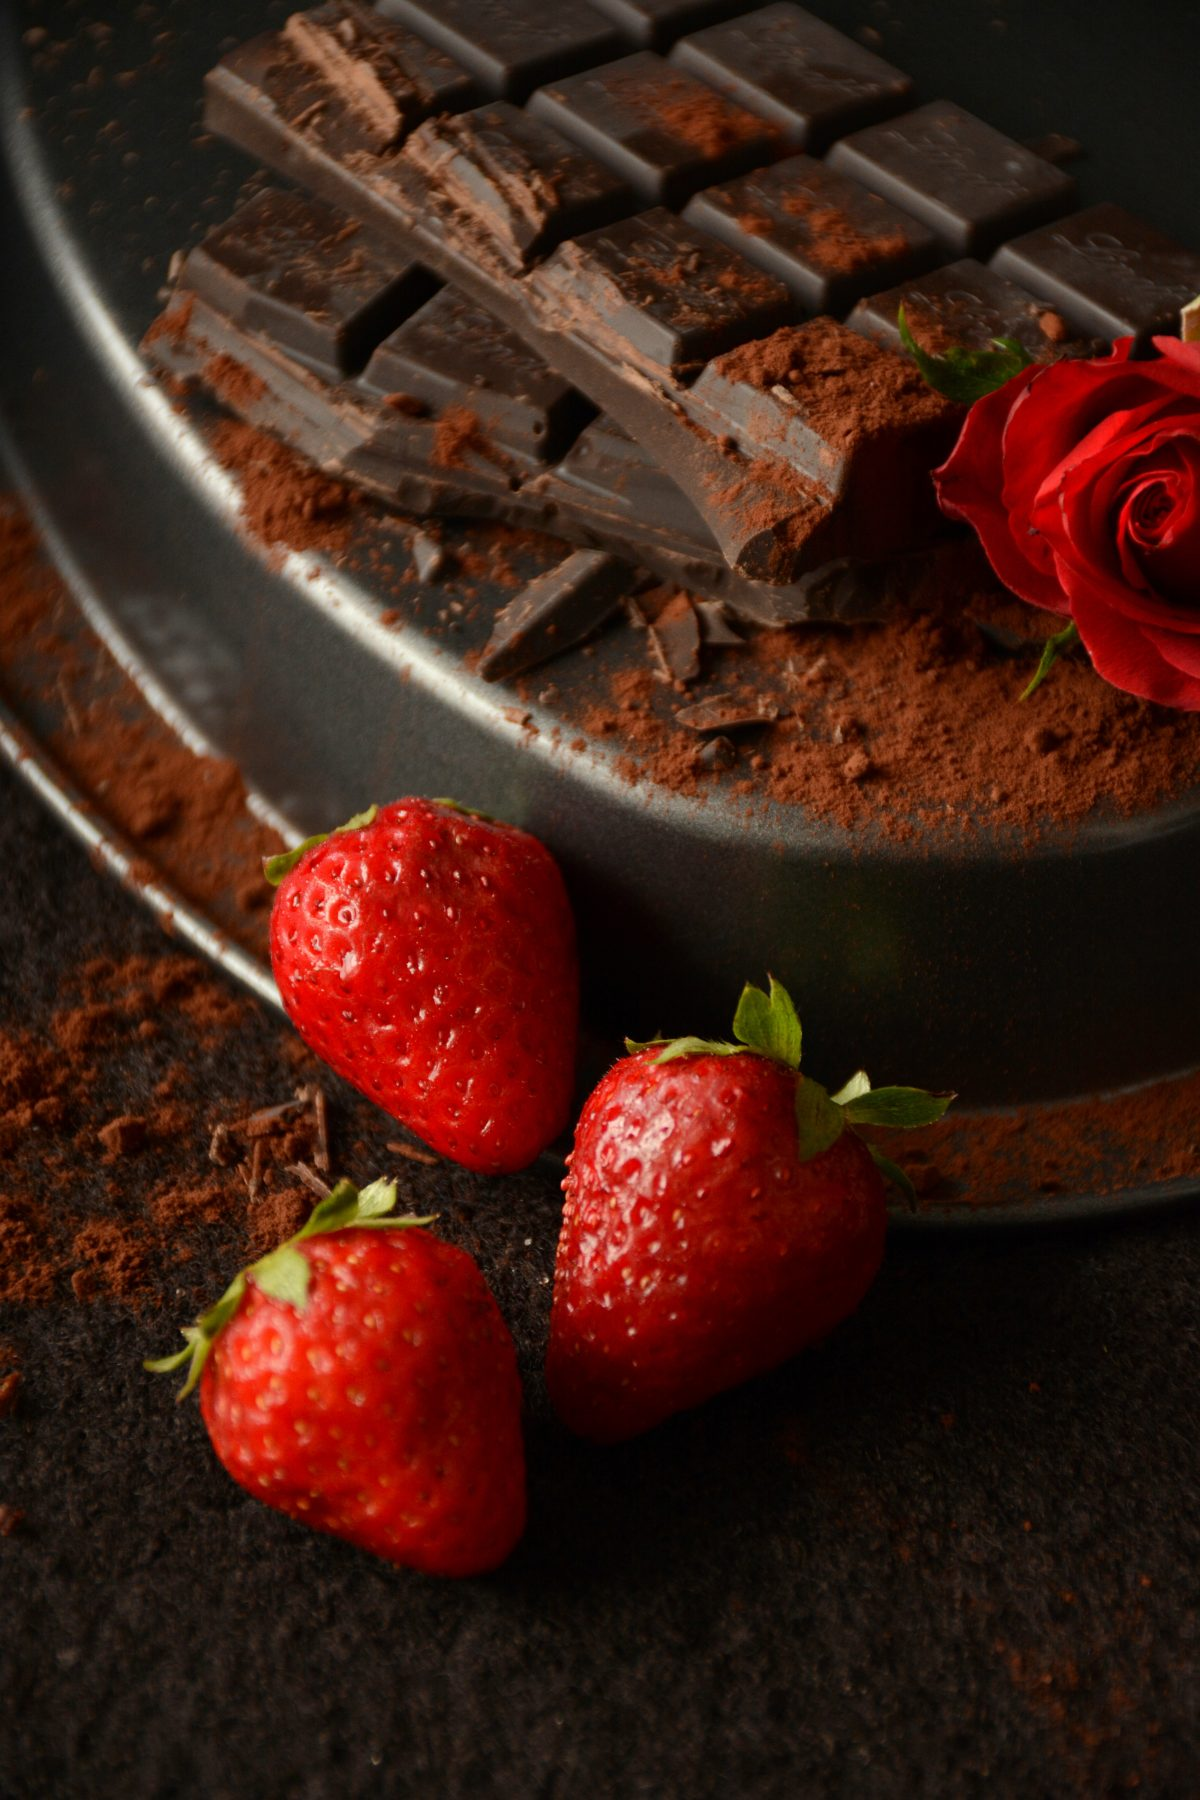 Chocolates and Red Roses - Food Photography - thespiceadventuress.com